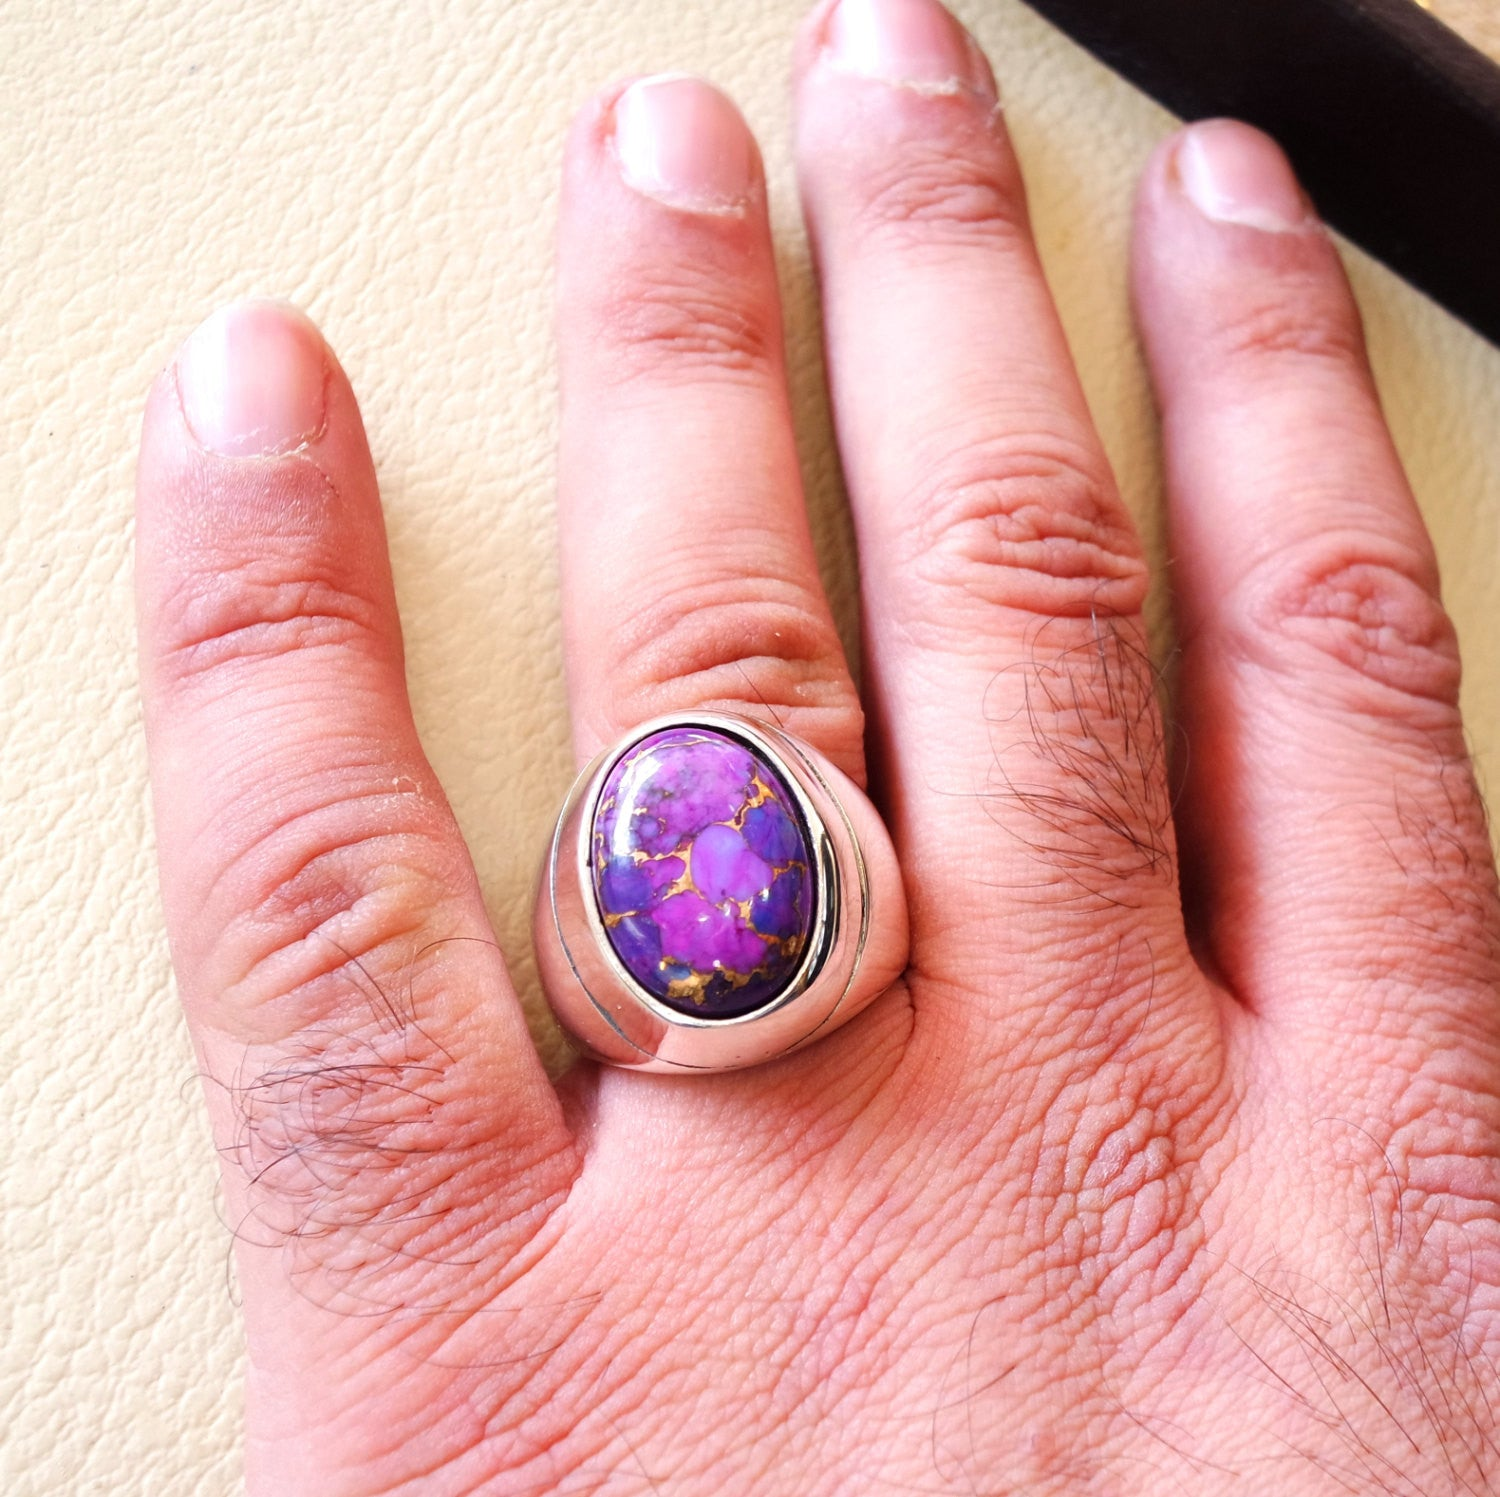 ottoman style heavy huge ring men sterling silver 925 jewelry copper purple turquoise high quality semi precious natural stone fast shipping